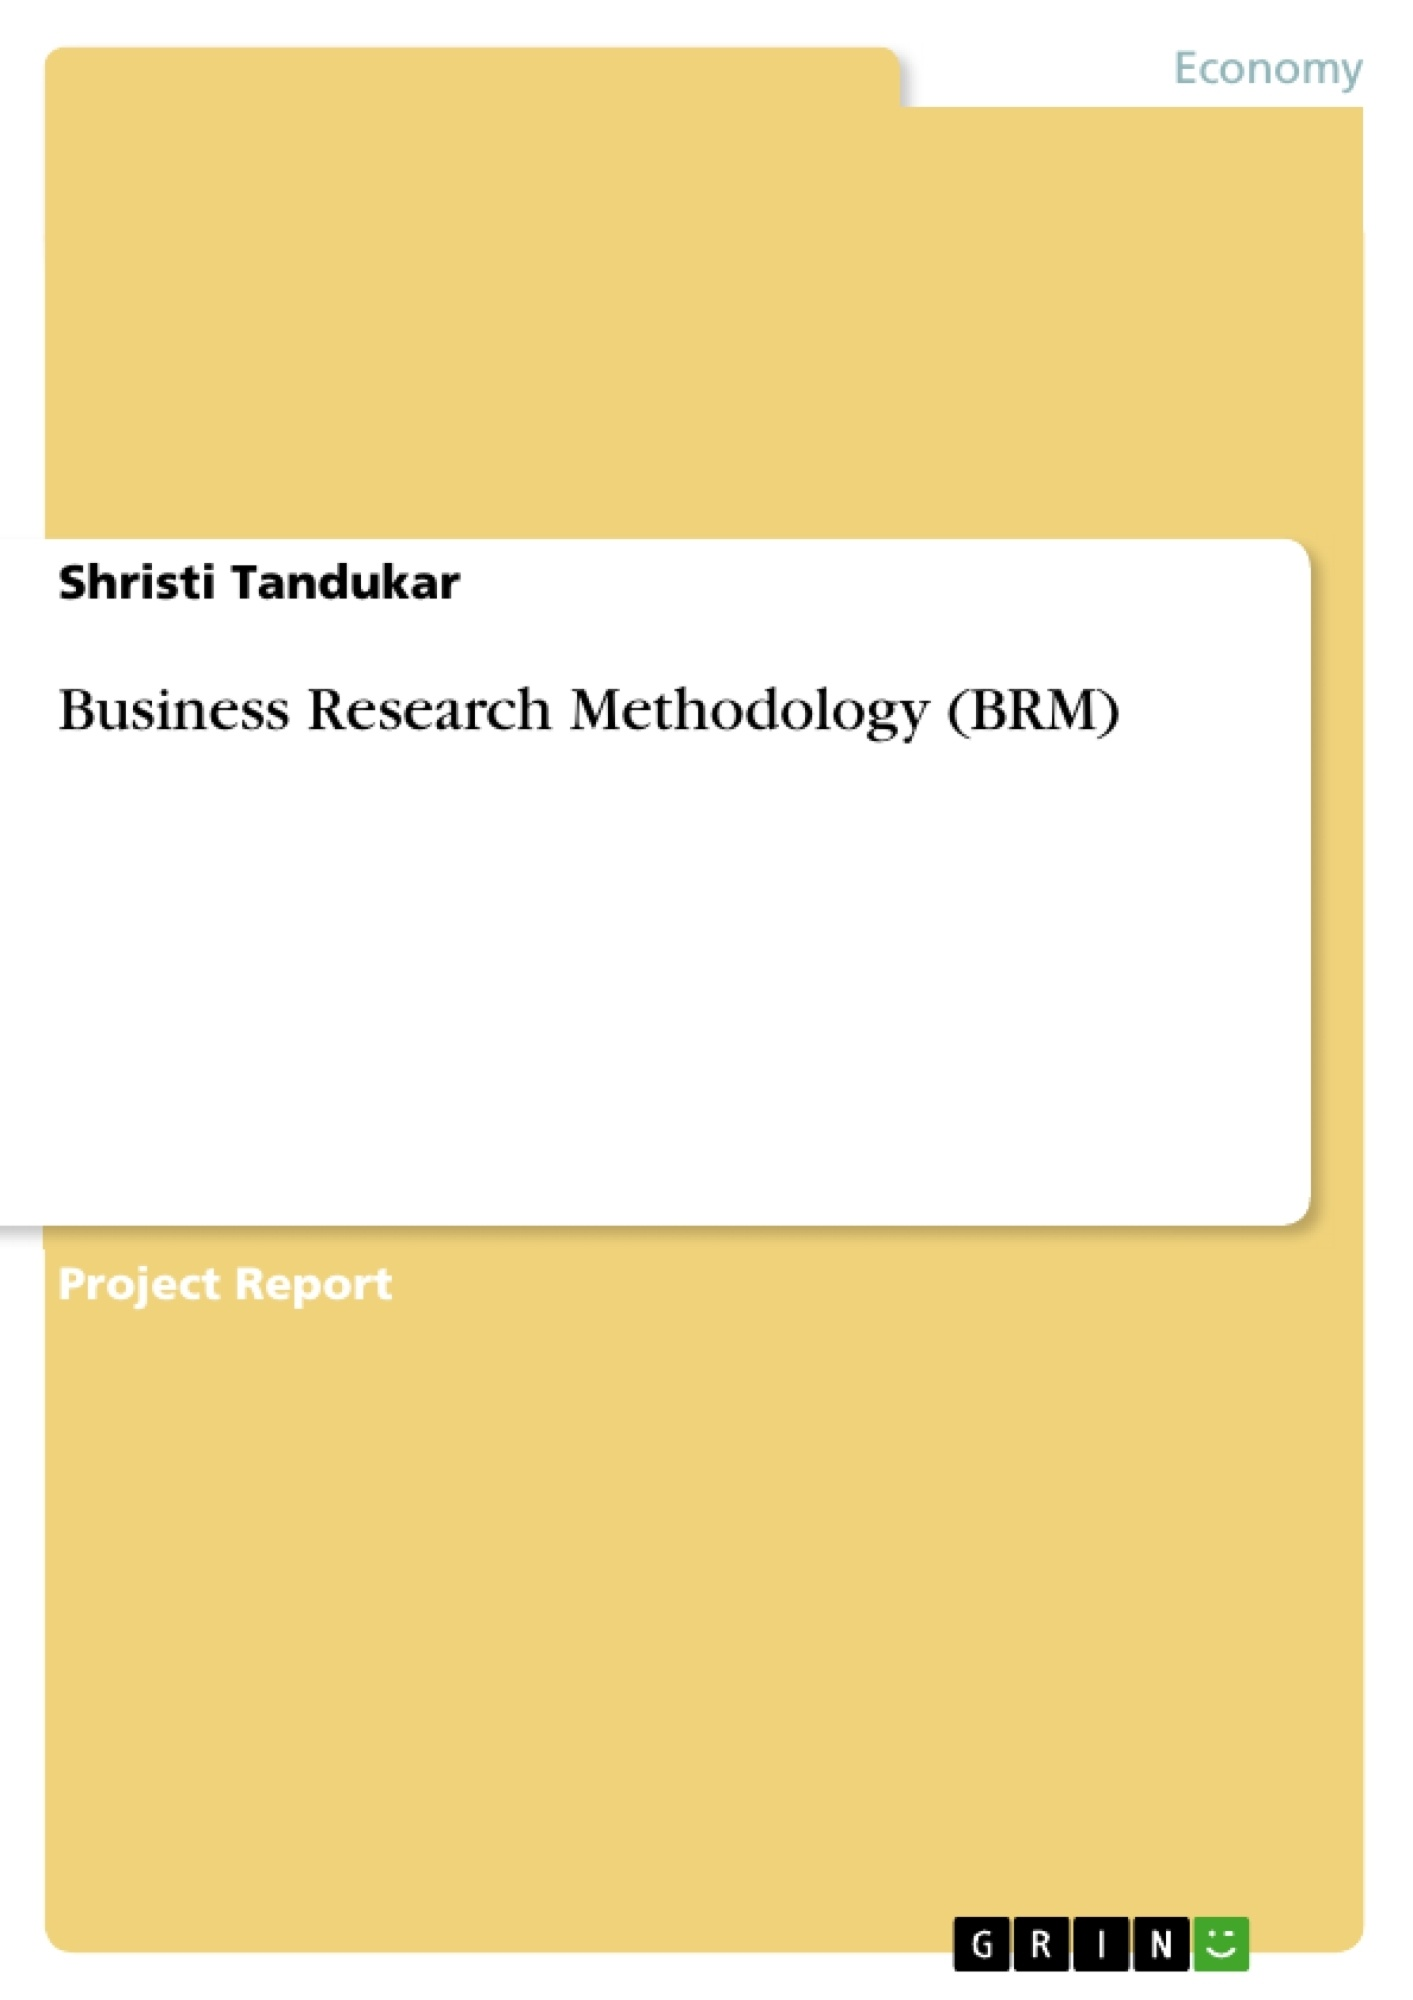 Title: Business Research Methodology (BRM)